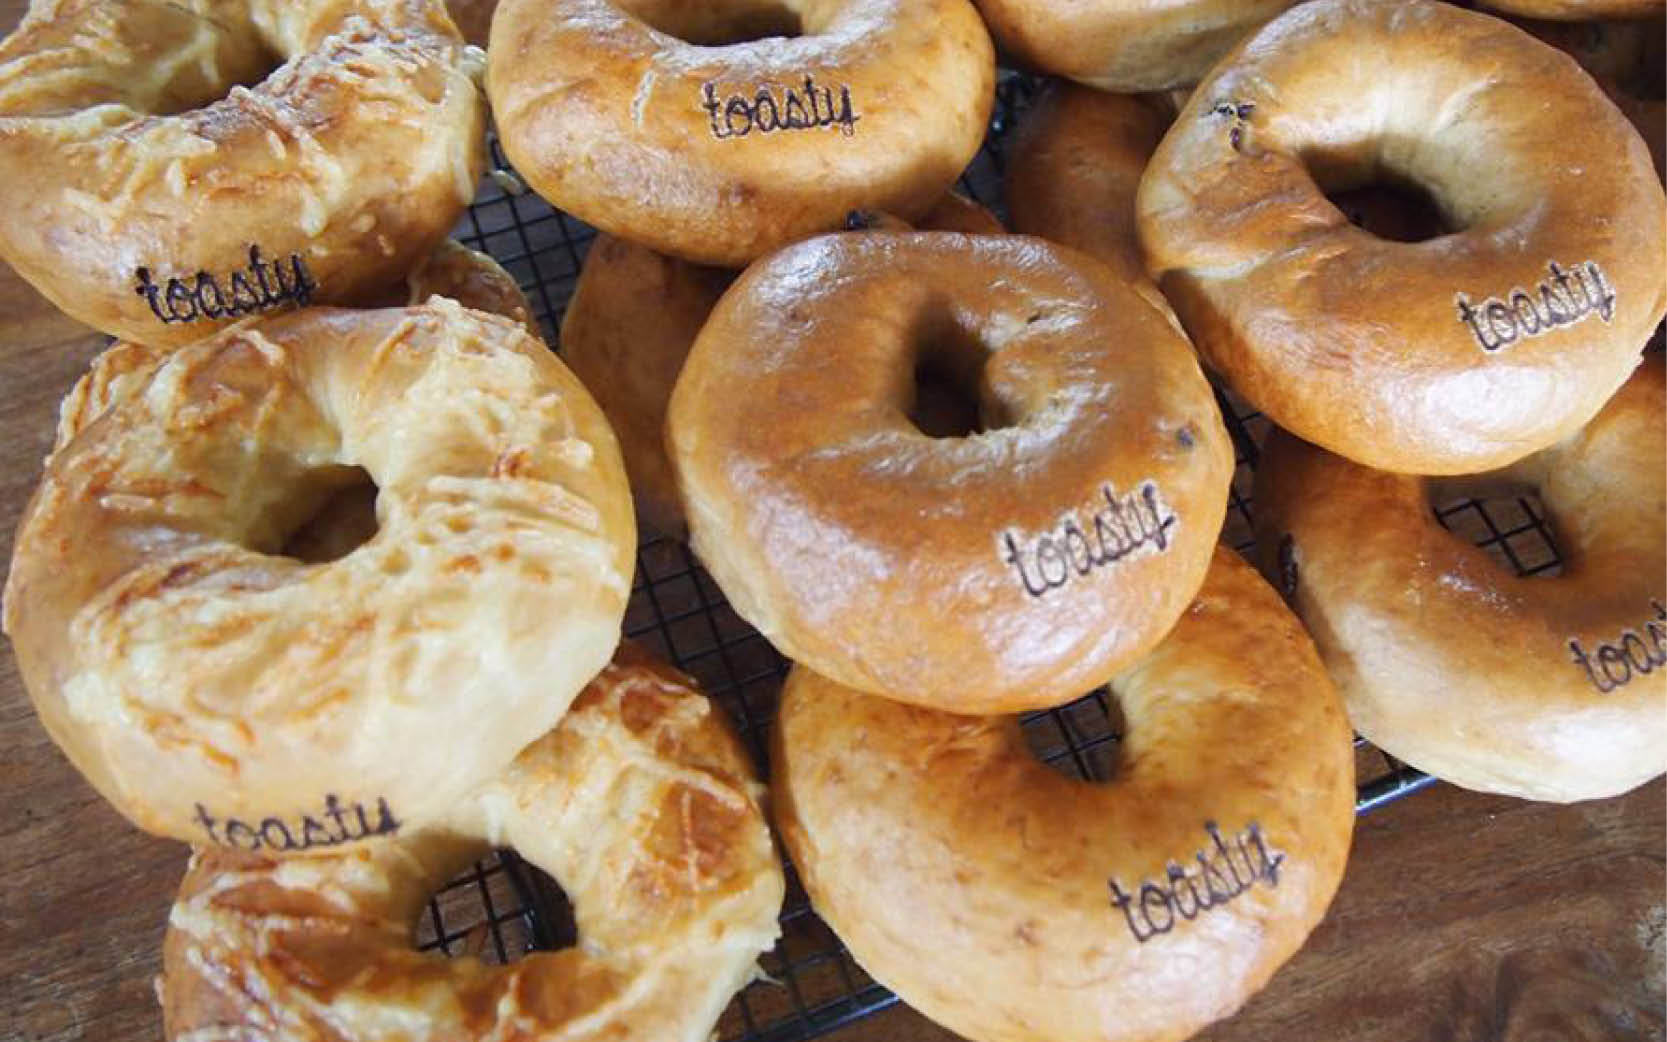 Toasty Bagels - Branding